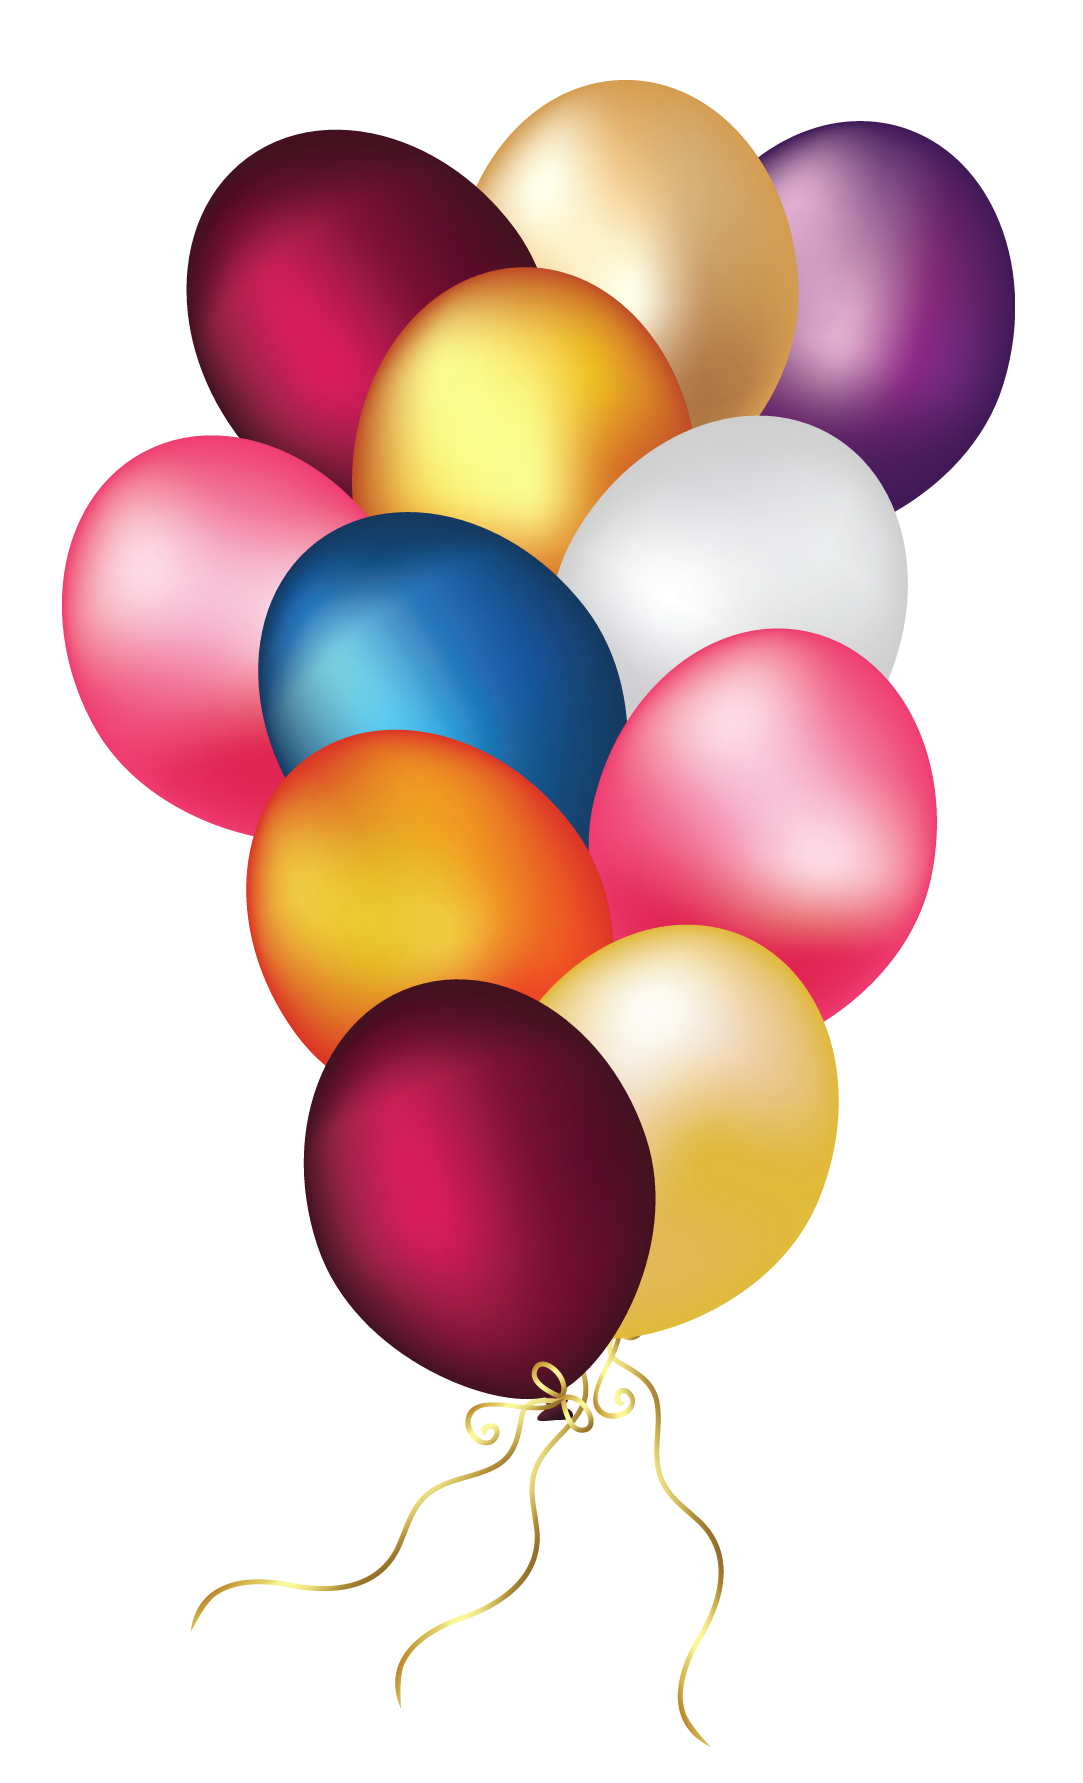 Colorful Balloons Transparent Png Clipart Happy Birthday